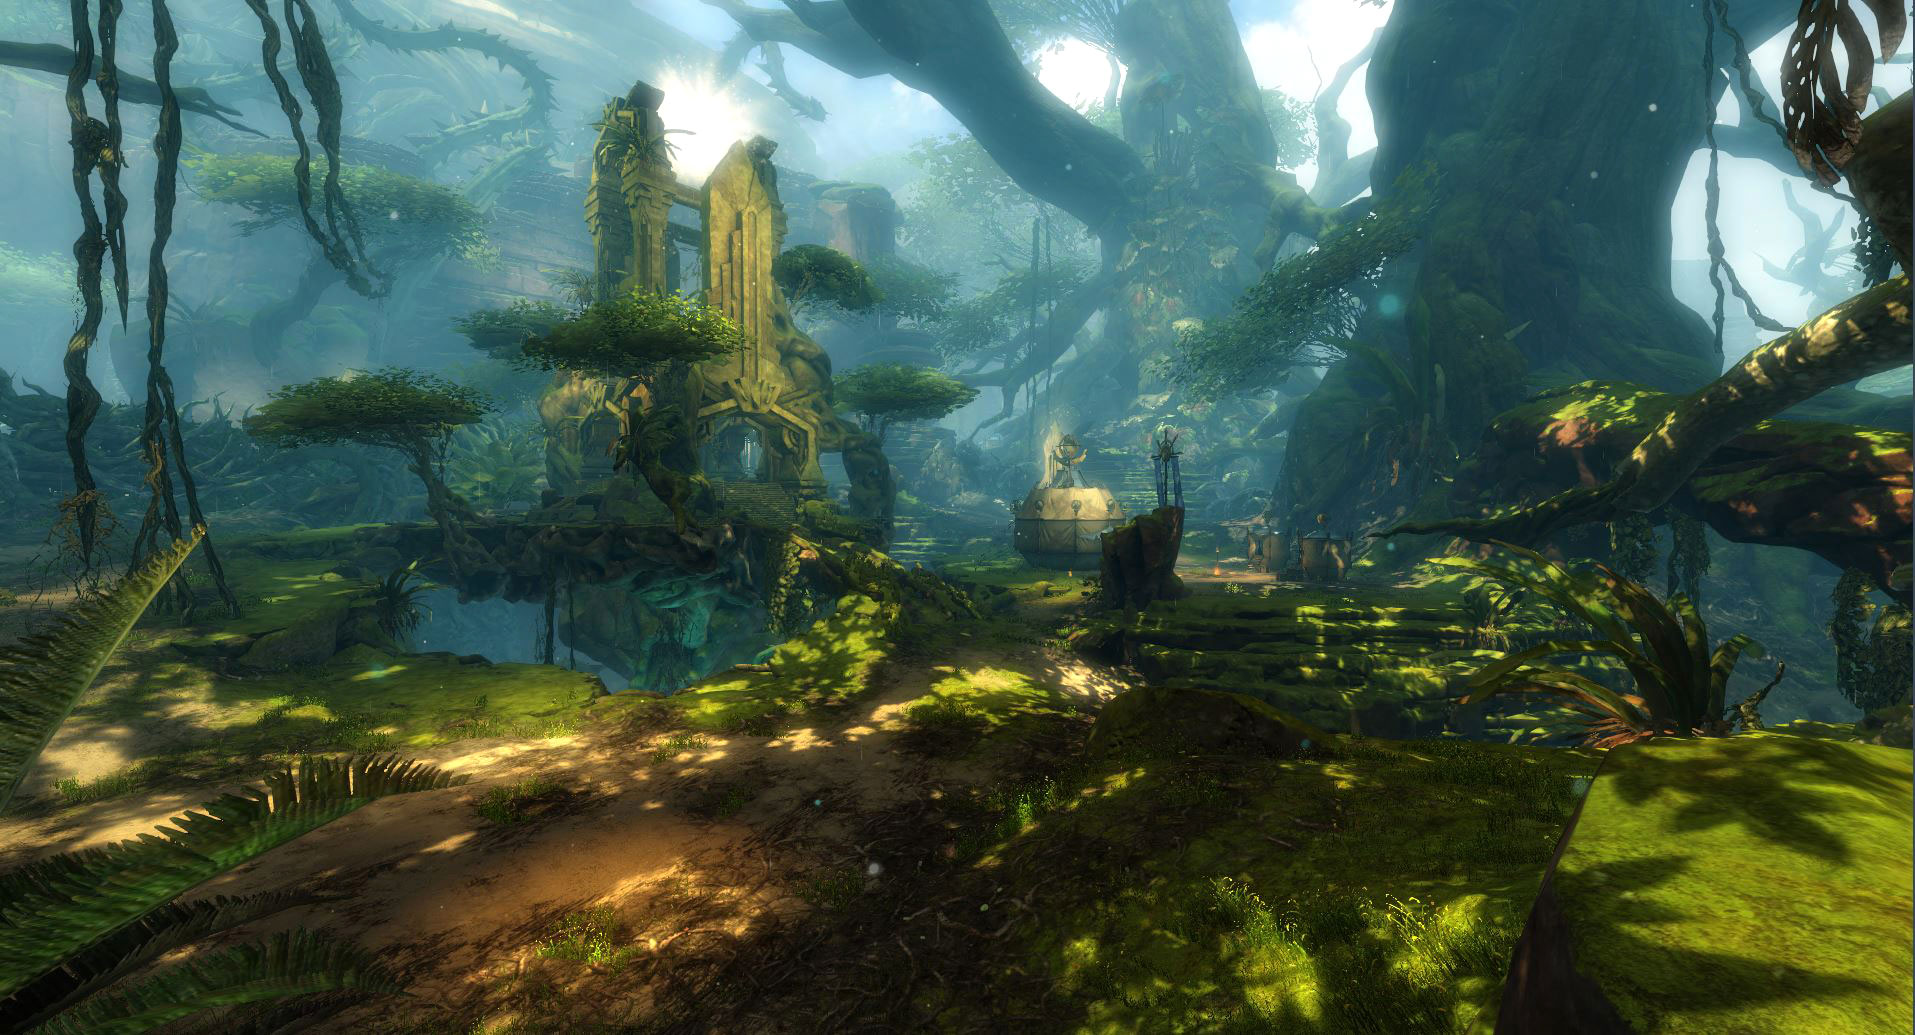 Guild Wars 1 World Map.Journey Into The Heart Of Maguuma In Guild Wars 2 Heart Of Thorns